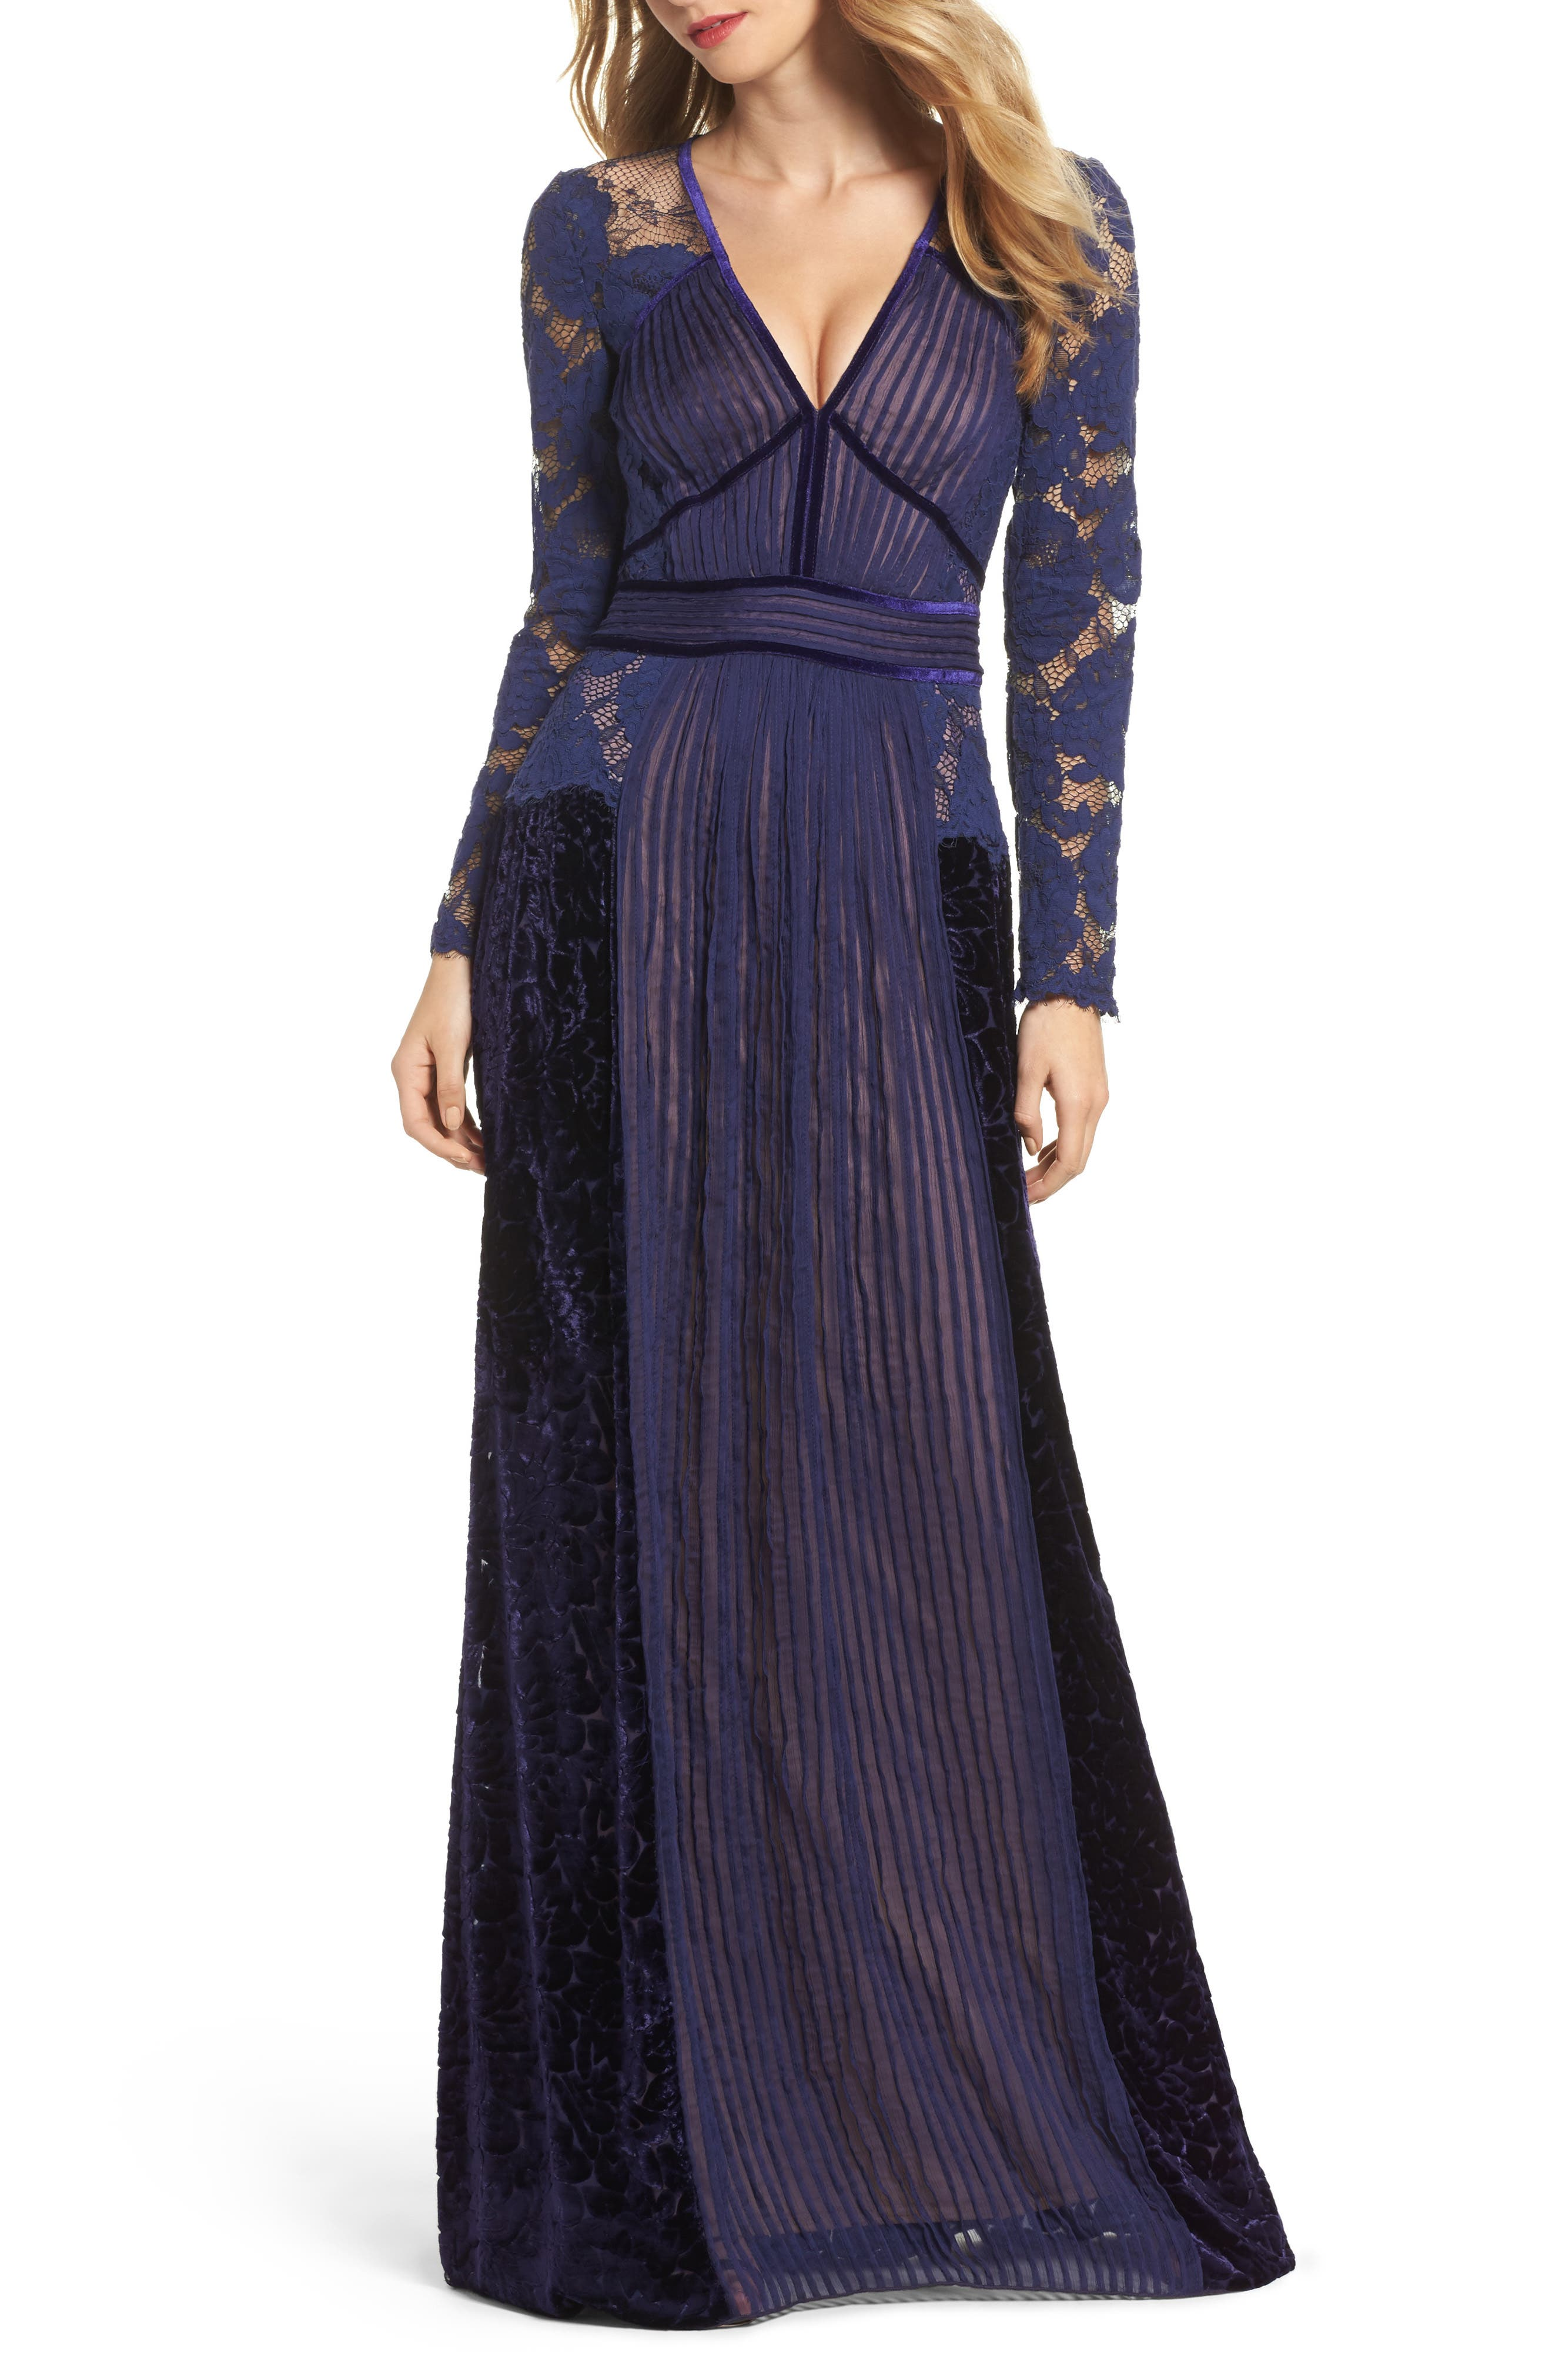 Alternate Image 1 Selected - Tadashi Shoji Mixed Media A-Line Gown